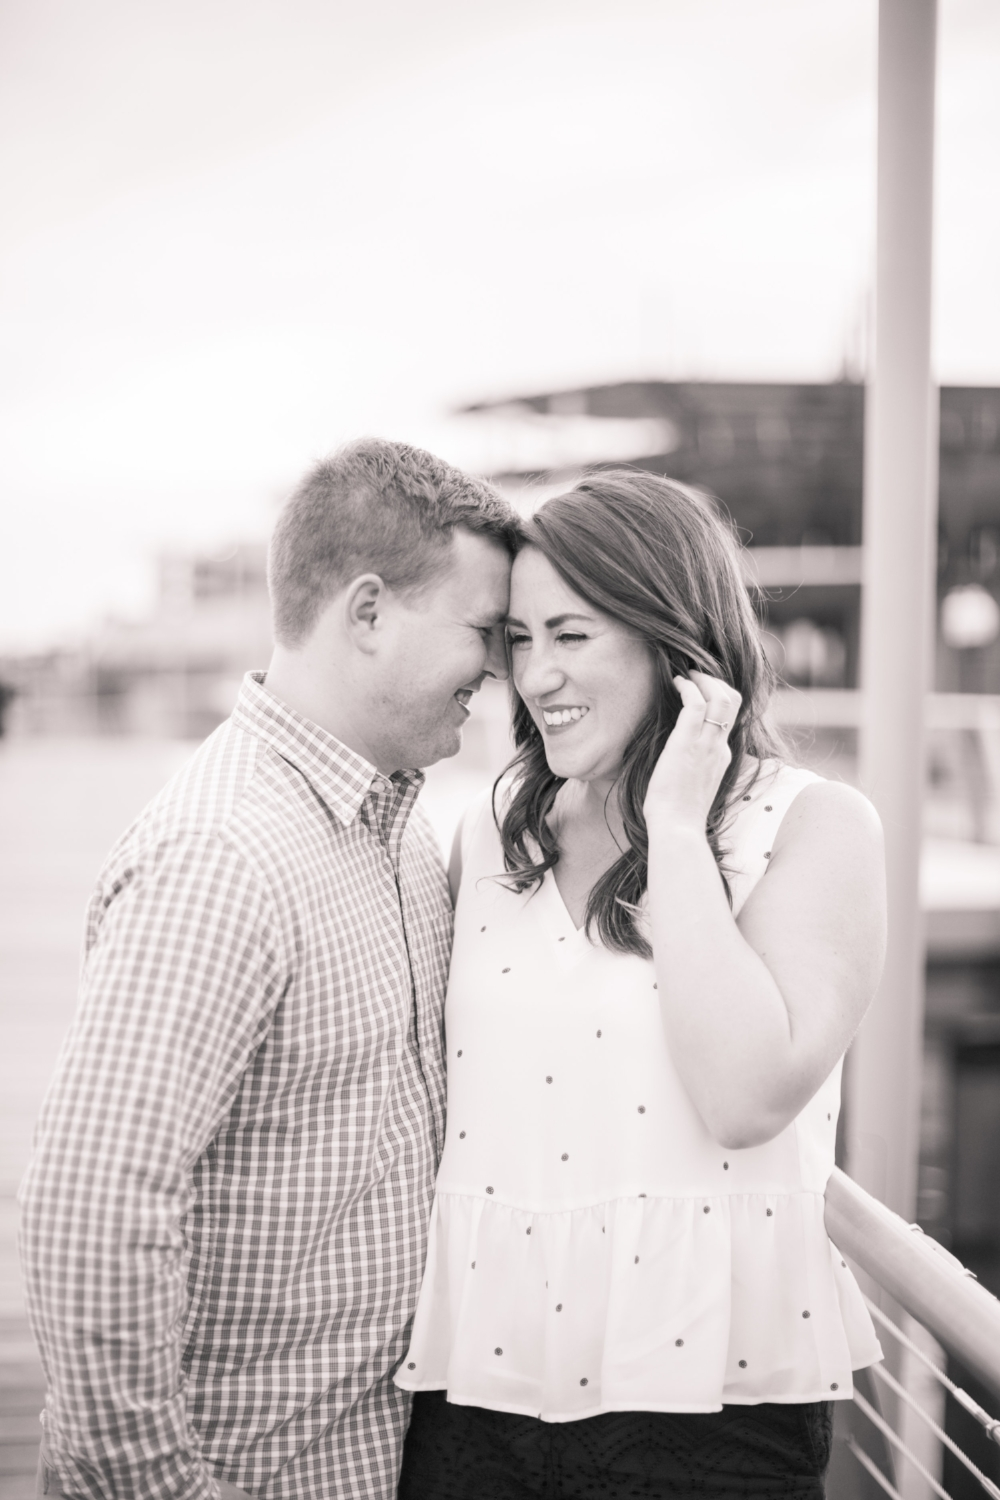 washington dc southeast waterfront engagement session on sincerely pete by jalapeno photography